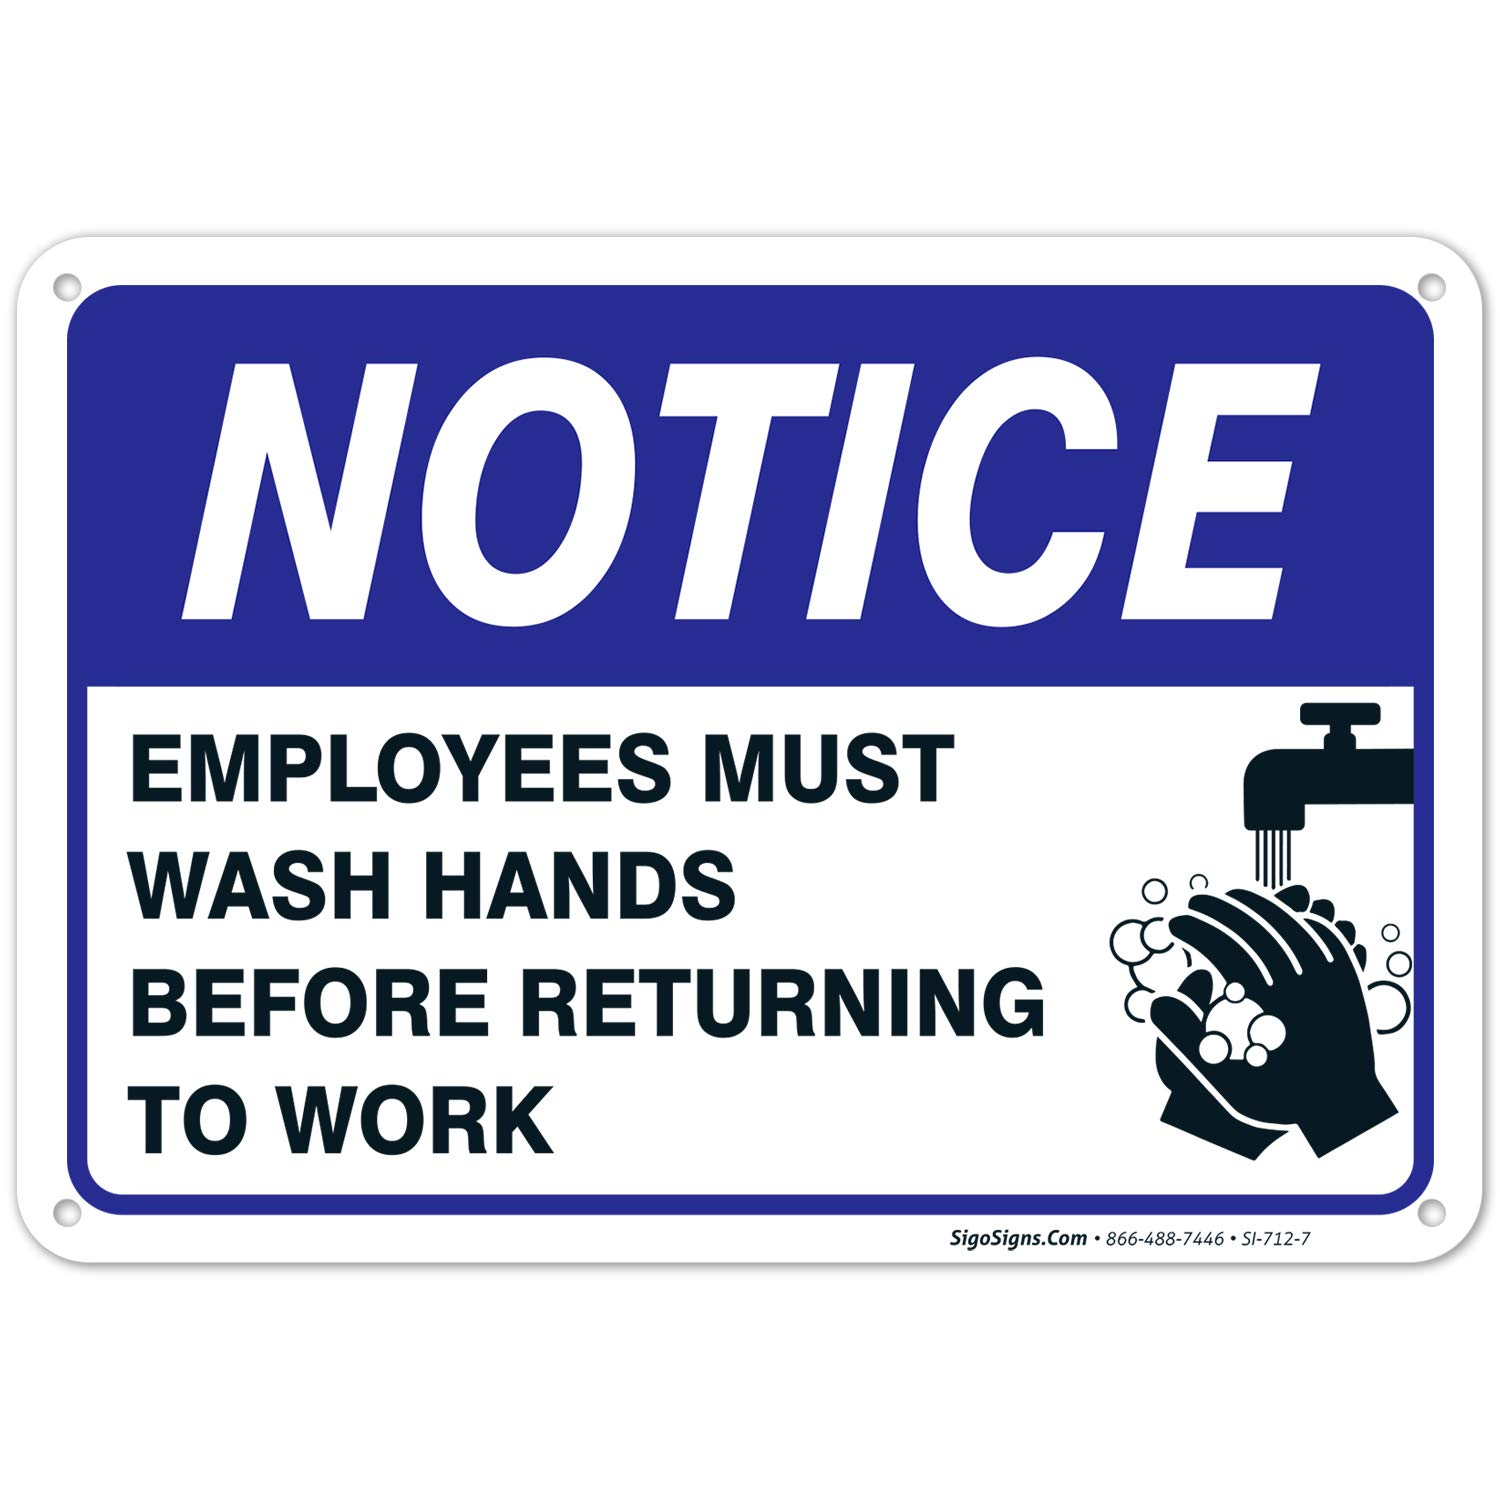 Employees Must Wash Hands Sign, Before Returning to Work, Heavy 0.40 Rust Free Aluminum, 10x7 Inches, Made in USA